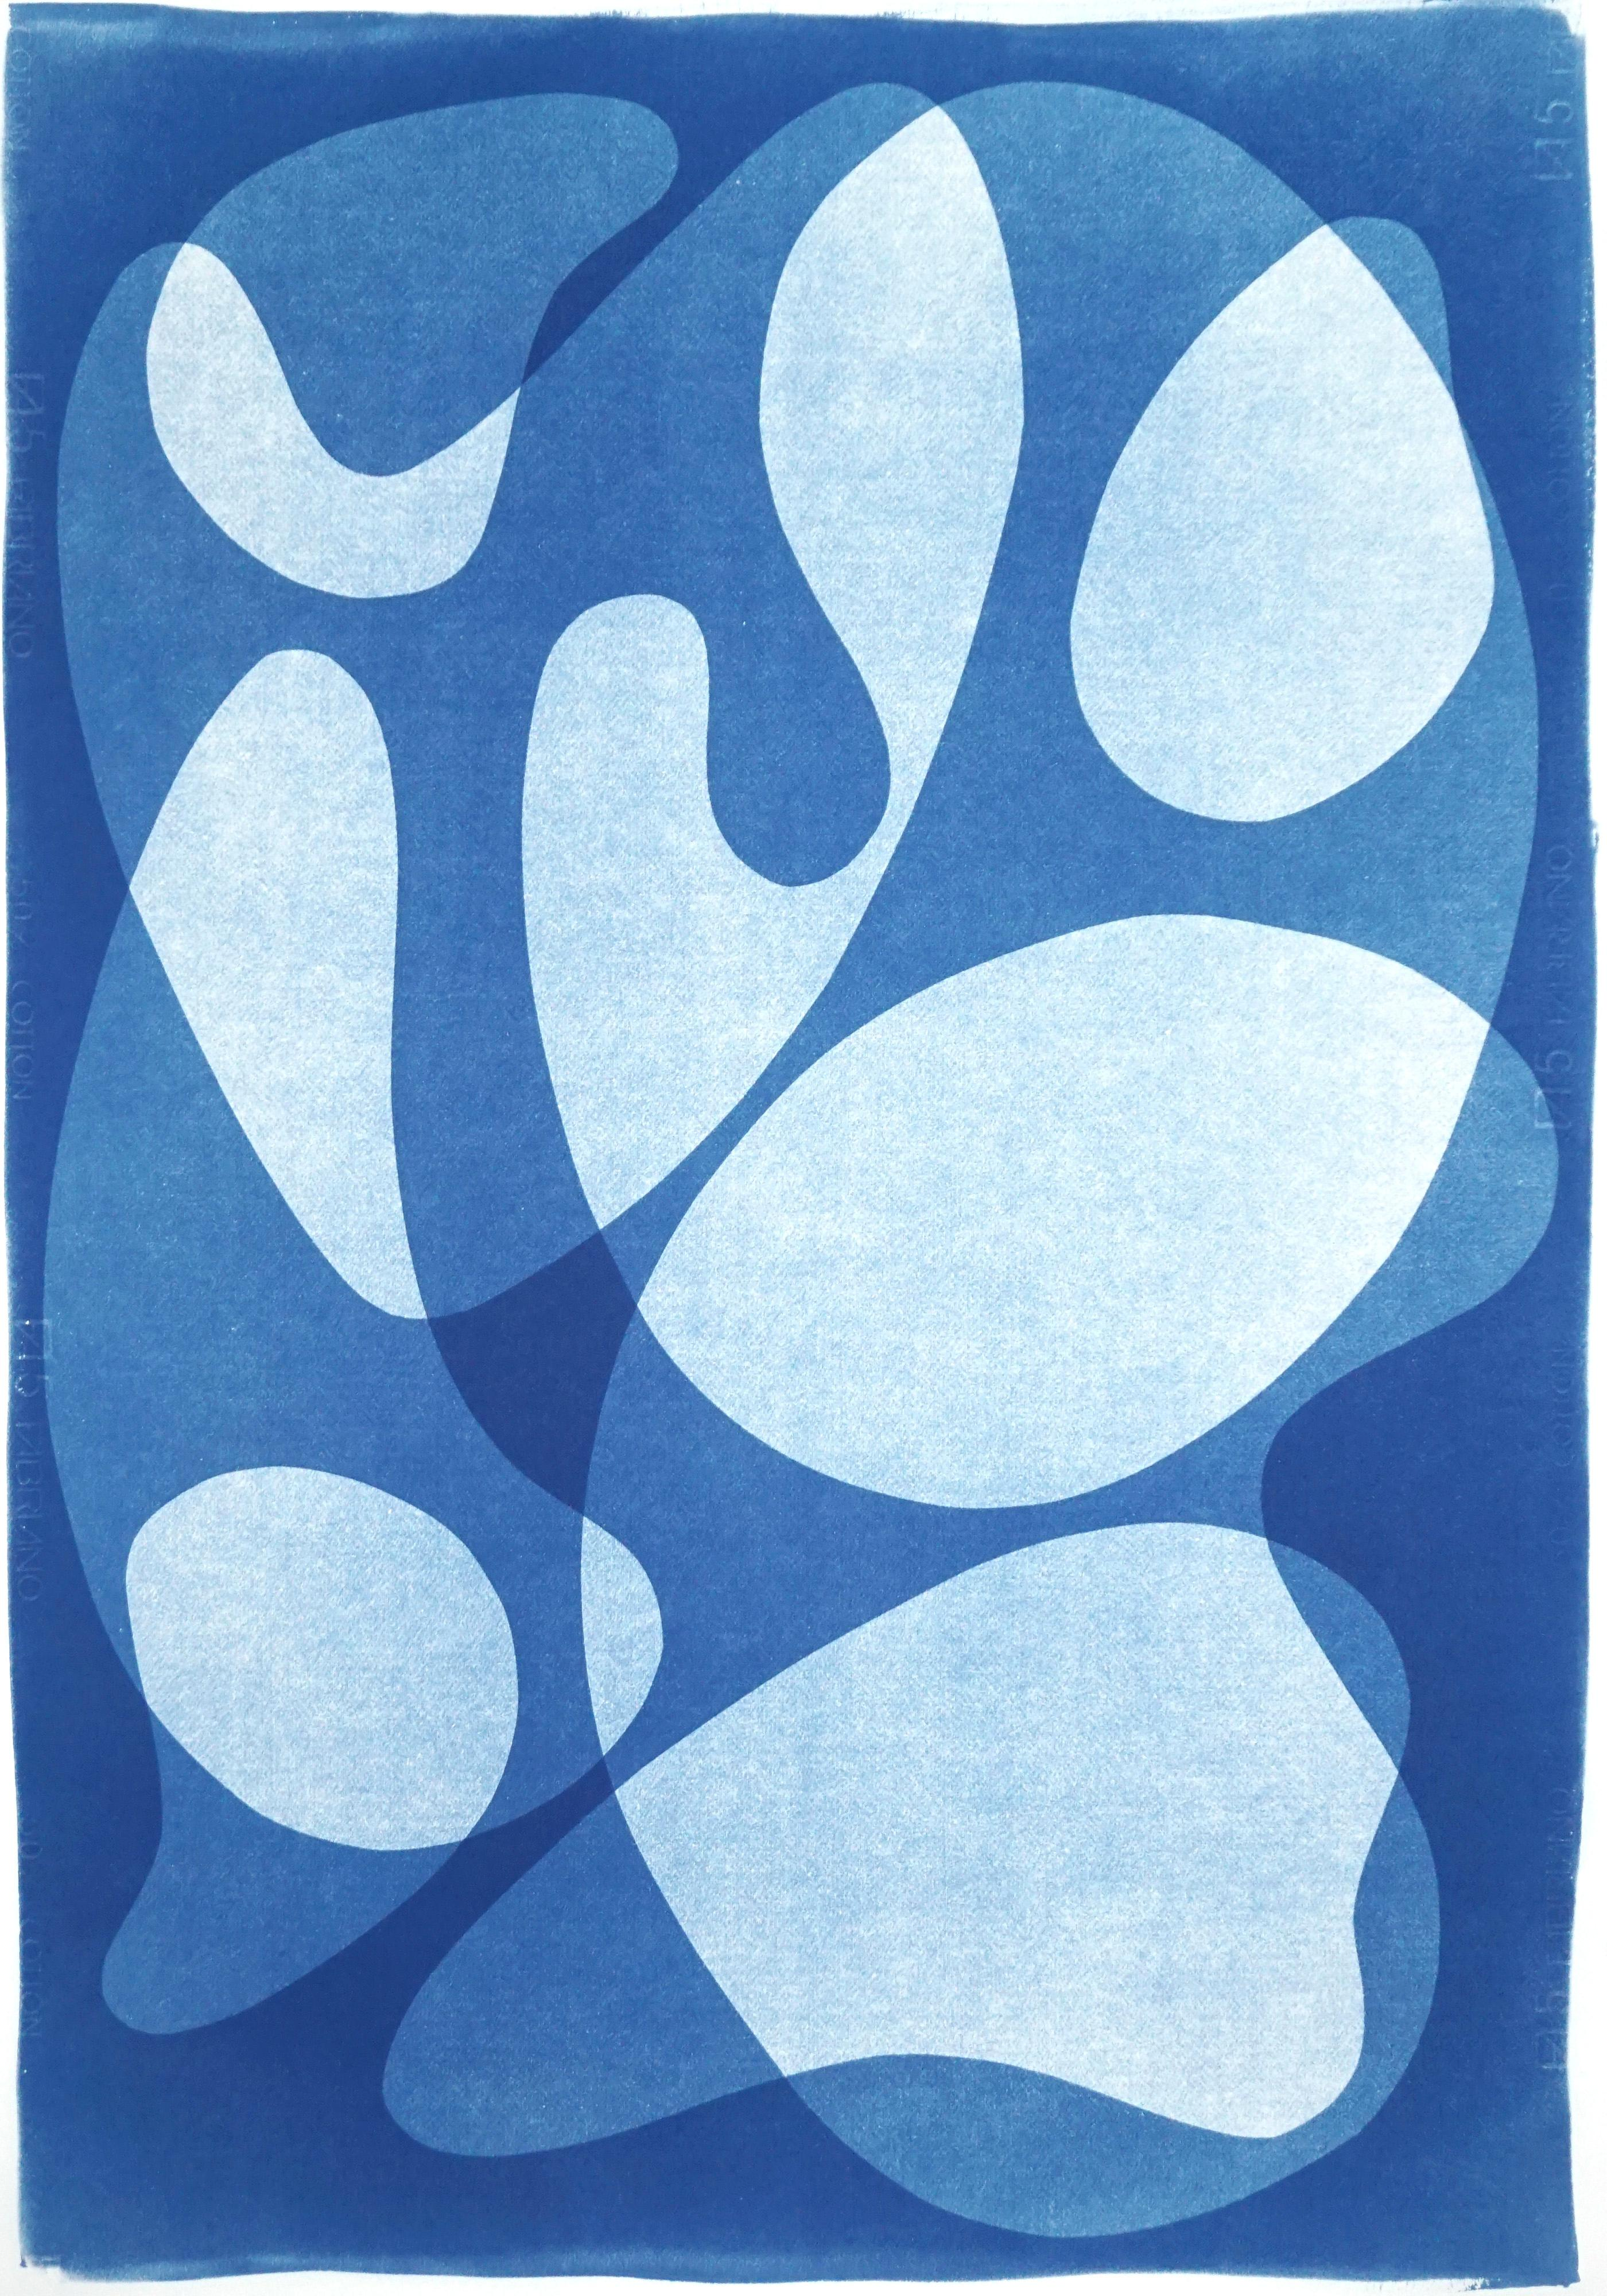 Abstract Blue Face, Contour Silhouettes Neutral Print, Avantgarde Style, Figures